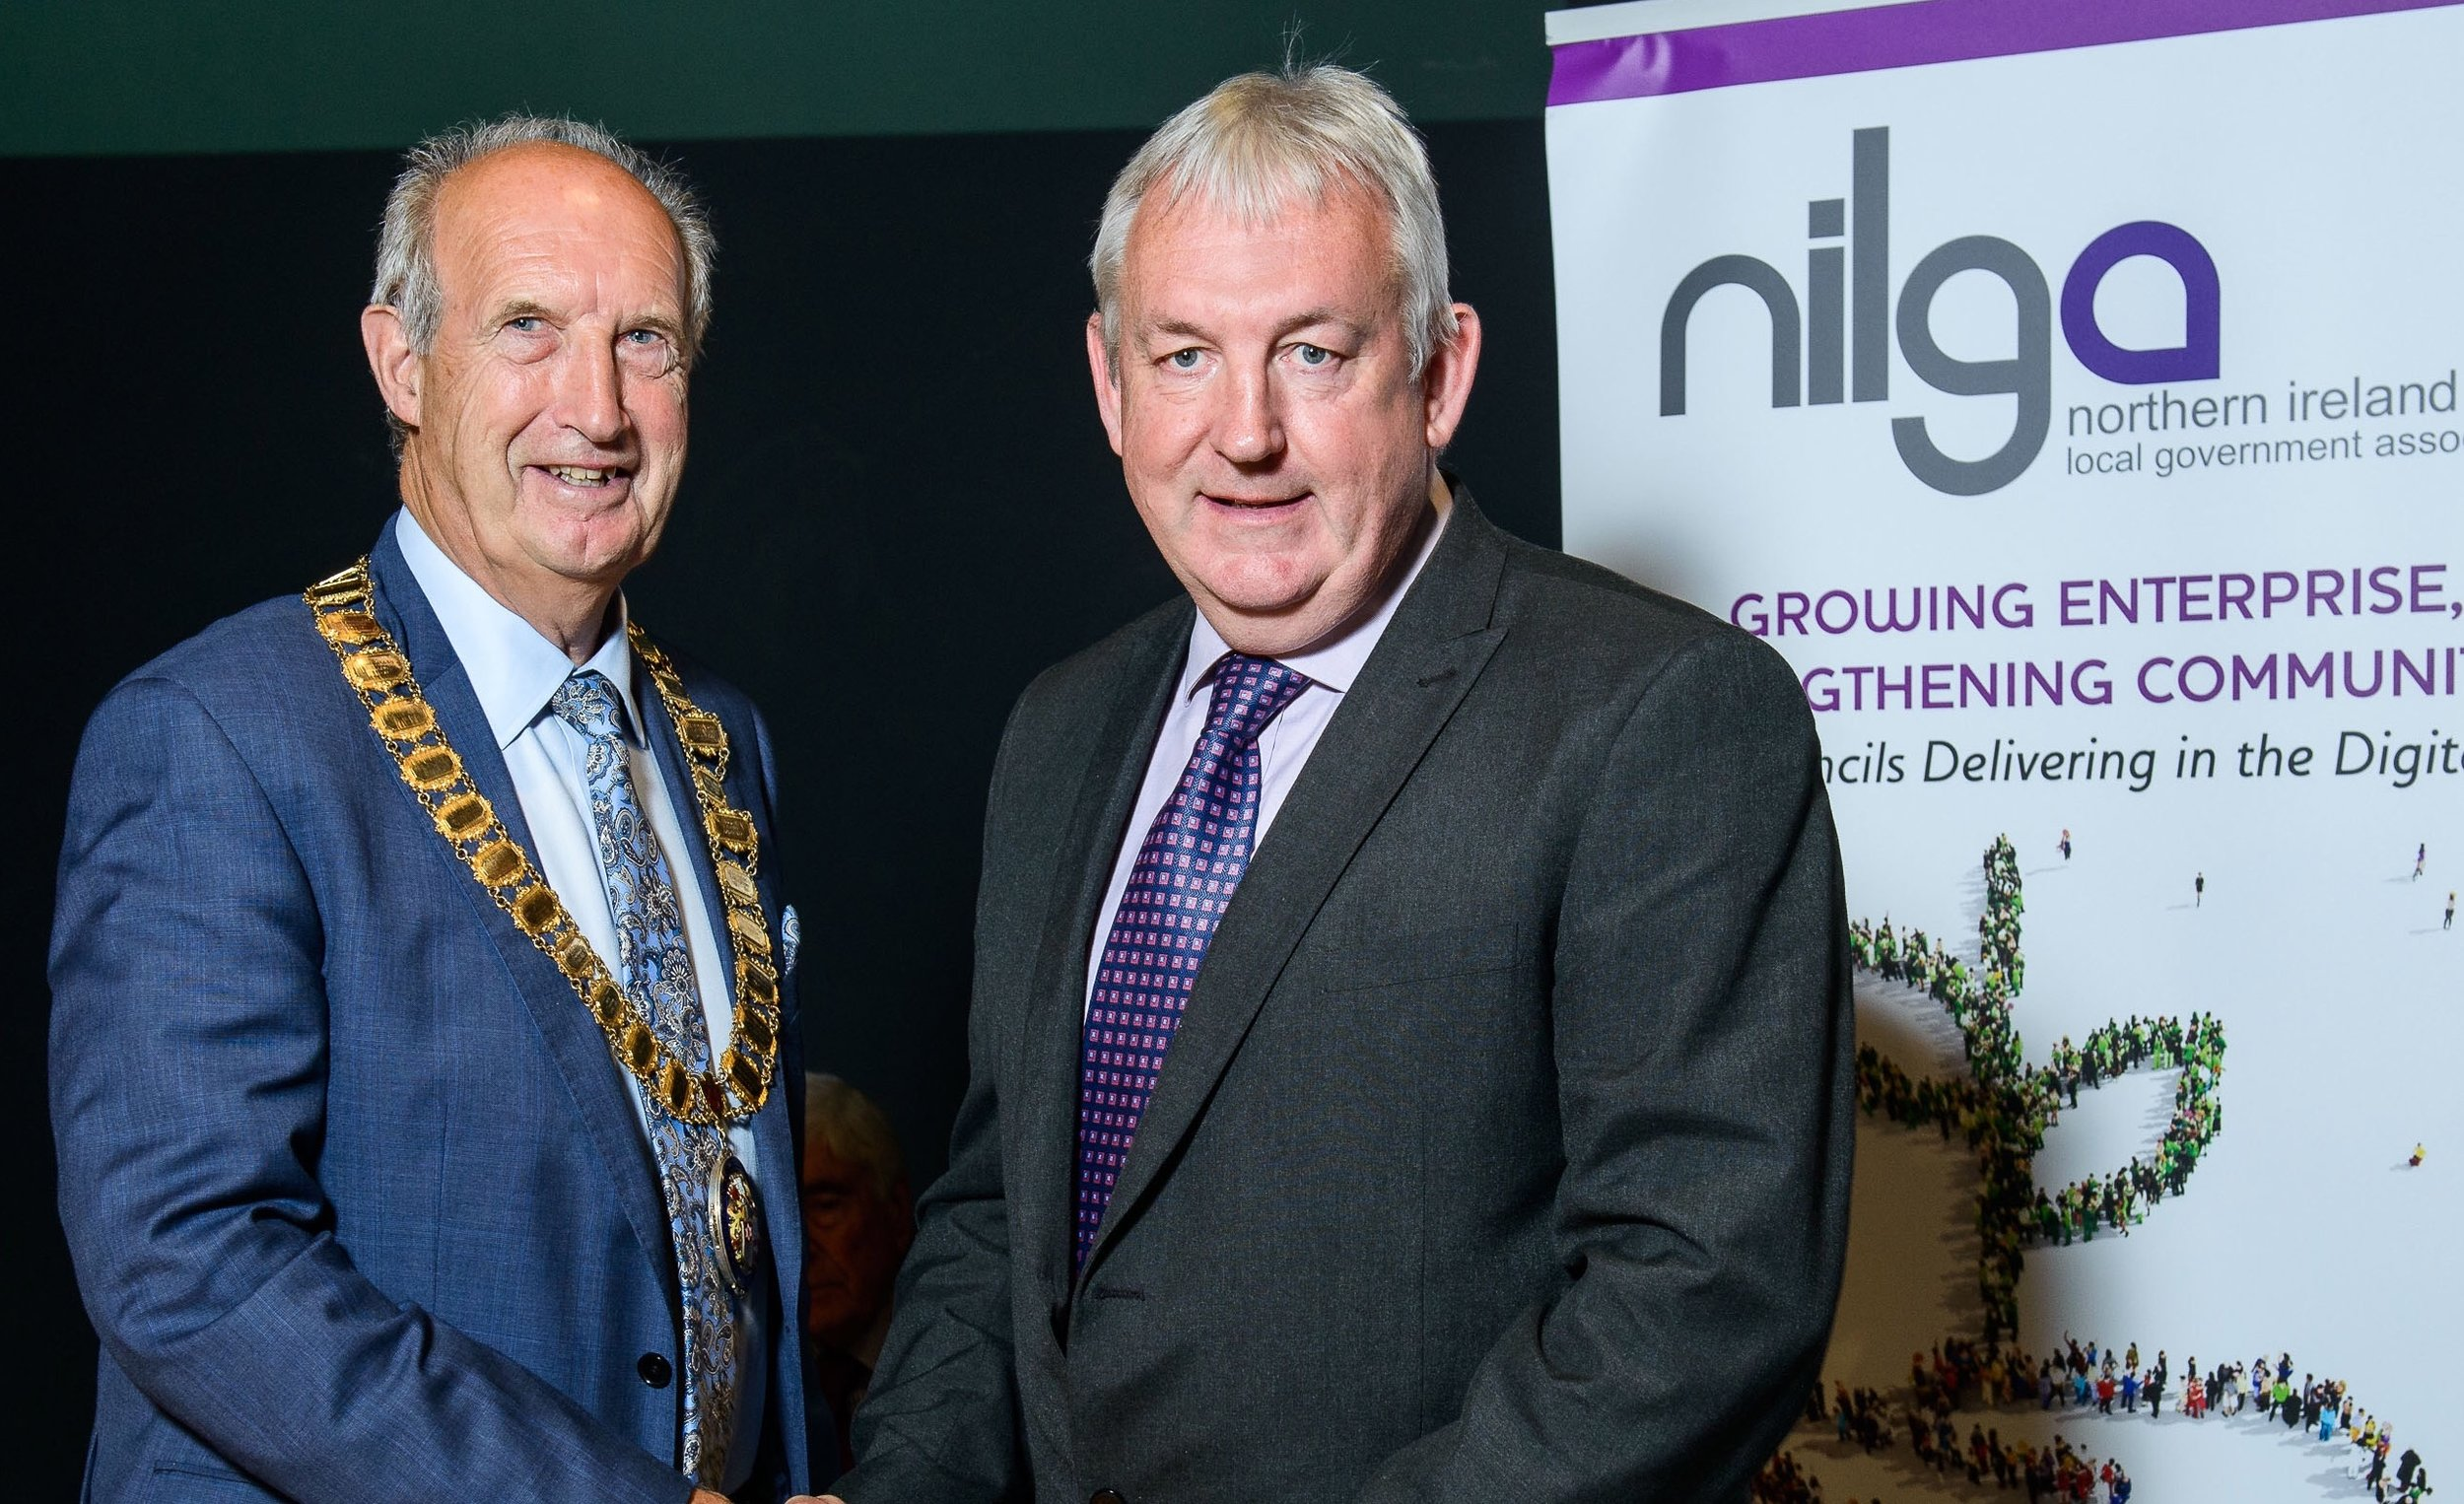 NILGA Pres Alderman Arnold Hatch and Cllr Sean McPeake.jpg